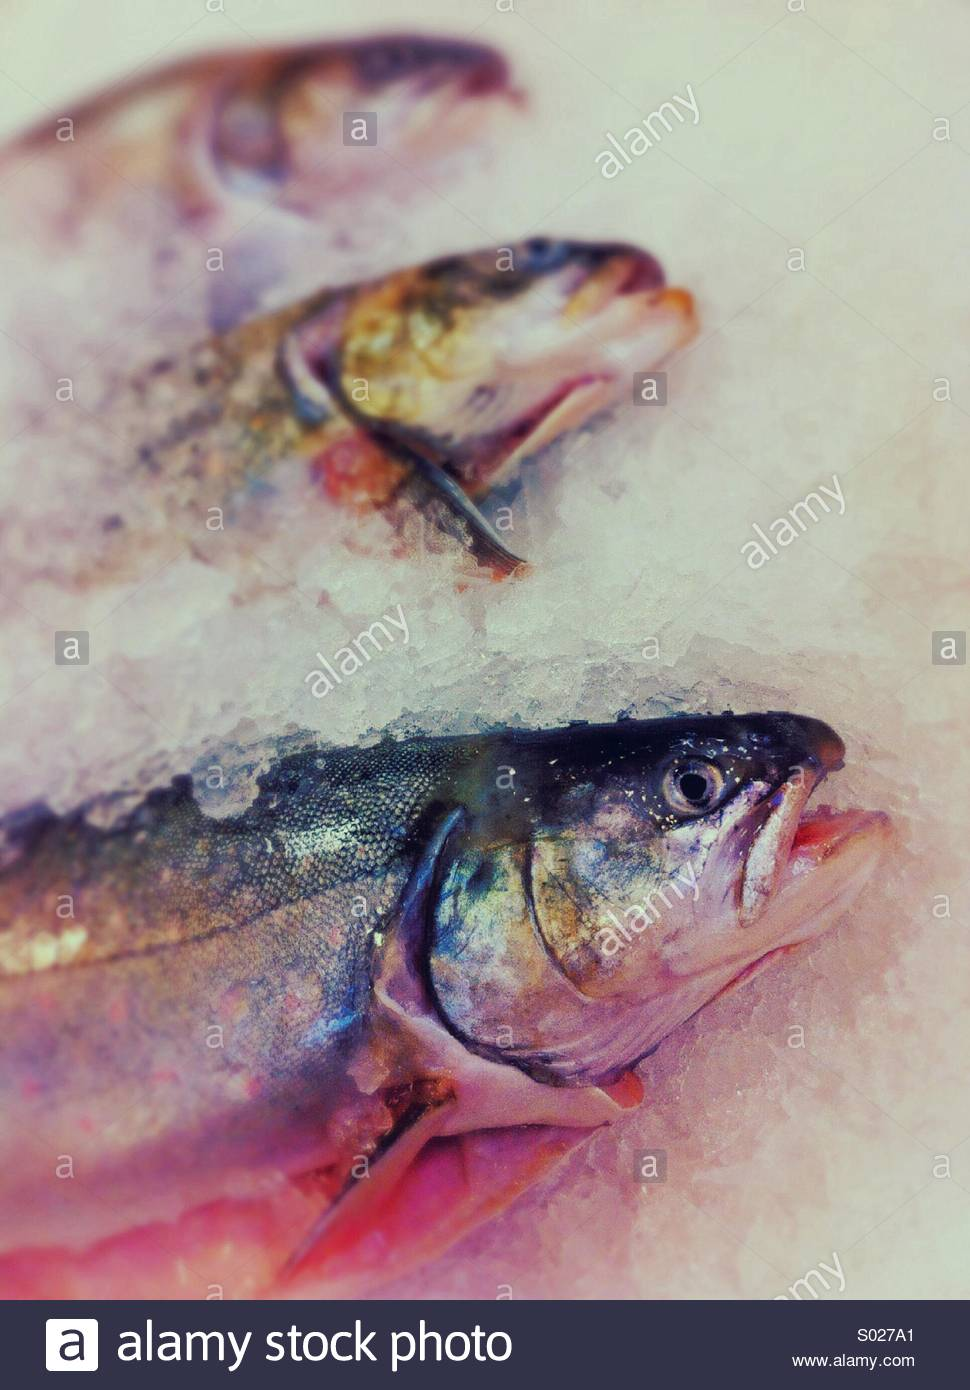 Whole fresh Arctic Char fish on ice in a local fish market, Vancouver, BC, Canada. - Stock Image